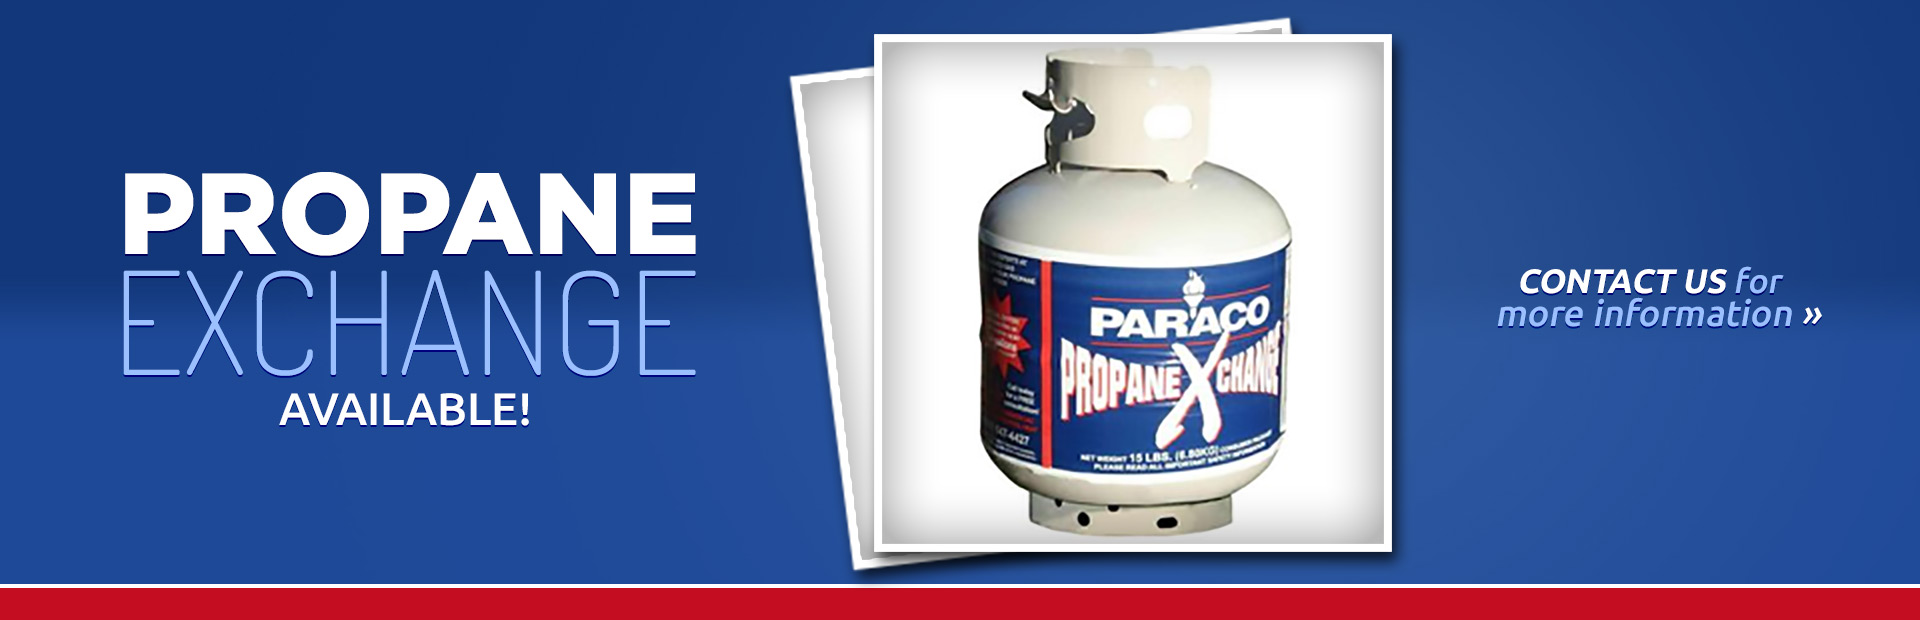 Propane Exchange Available: Contact us for more information.